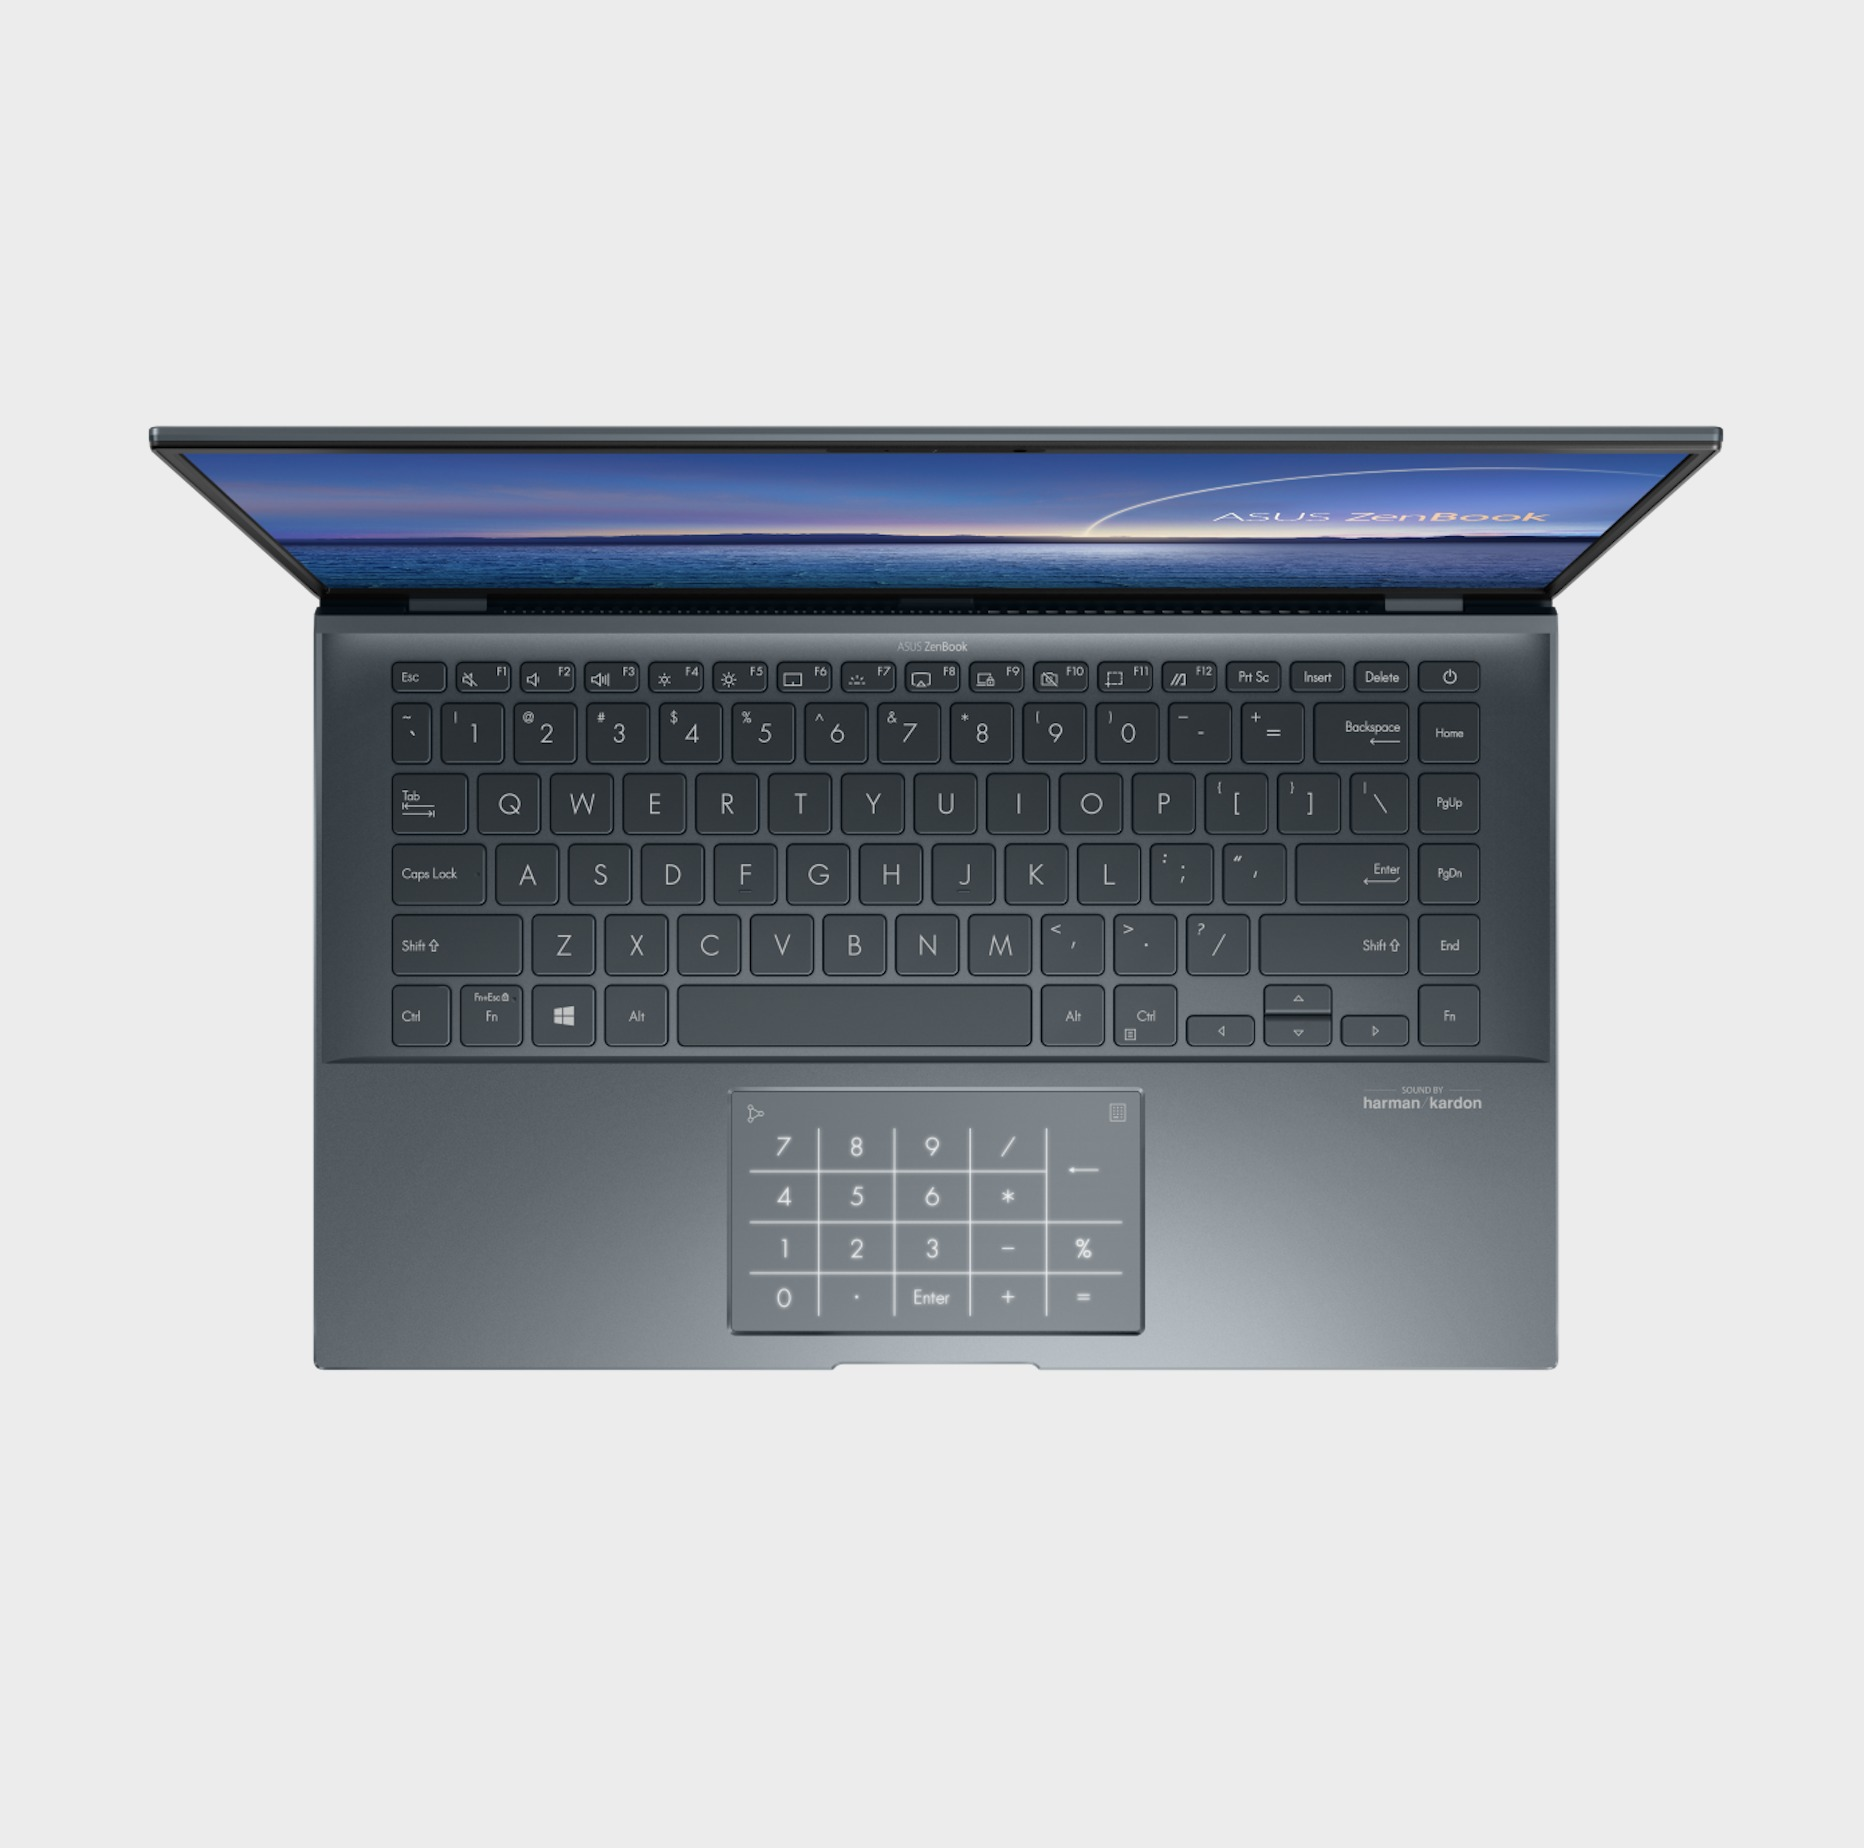 zenbook 14 ultralight